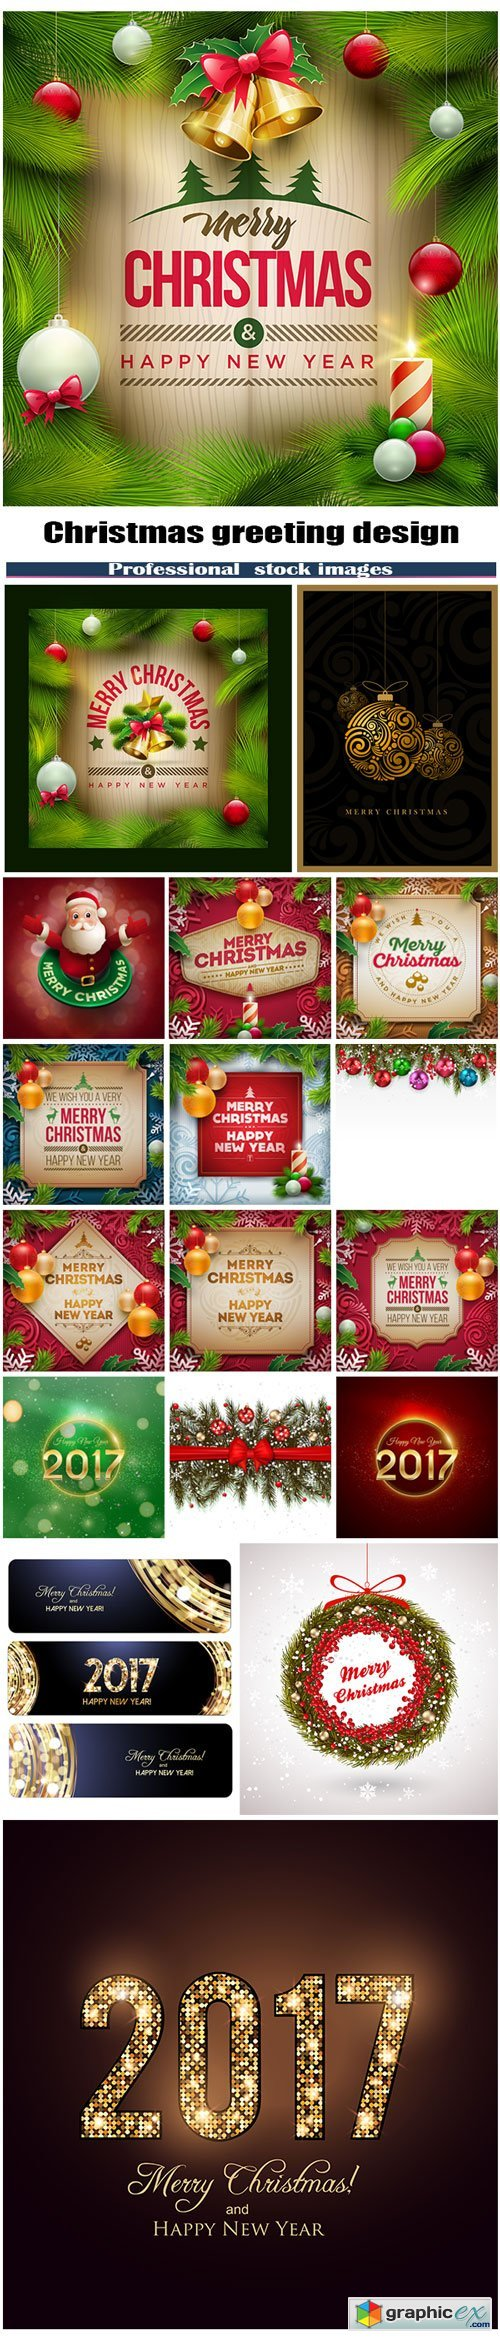 Christmas greeting design